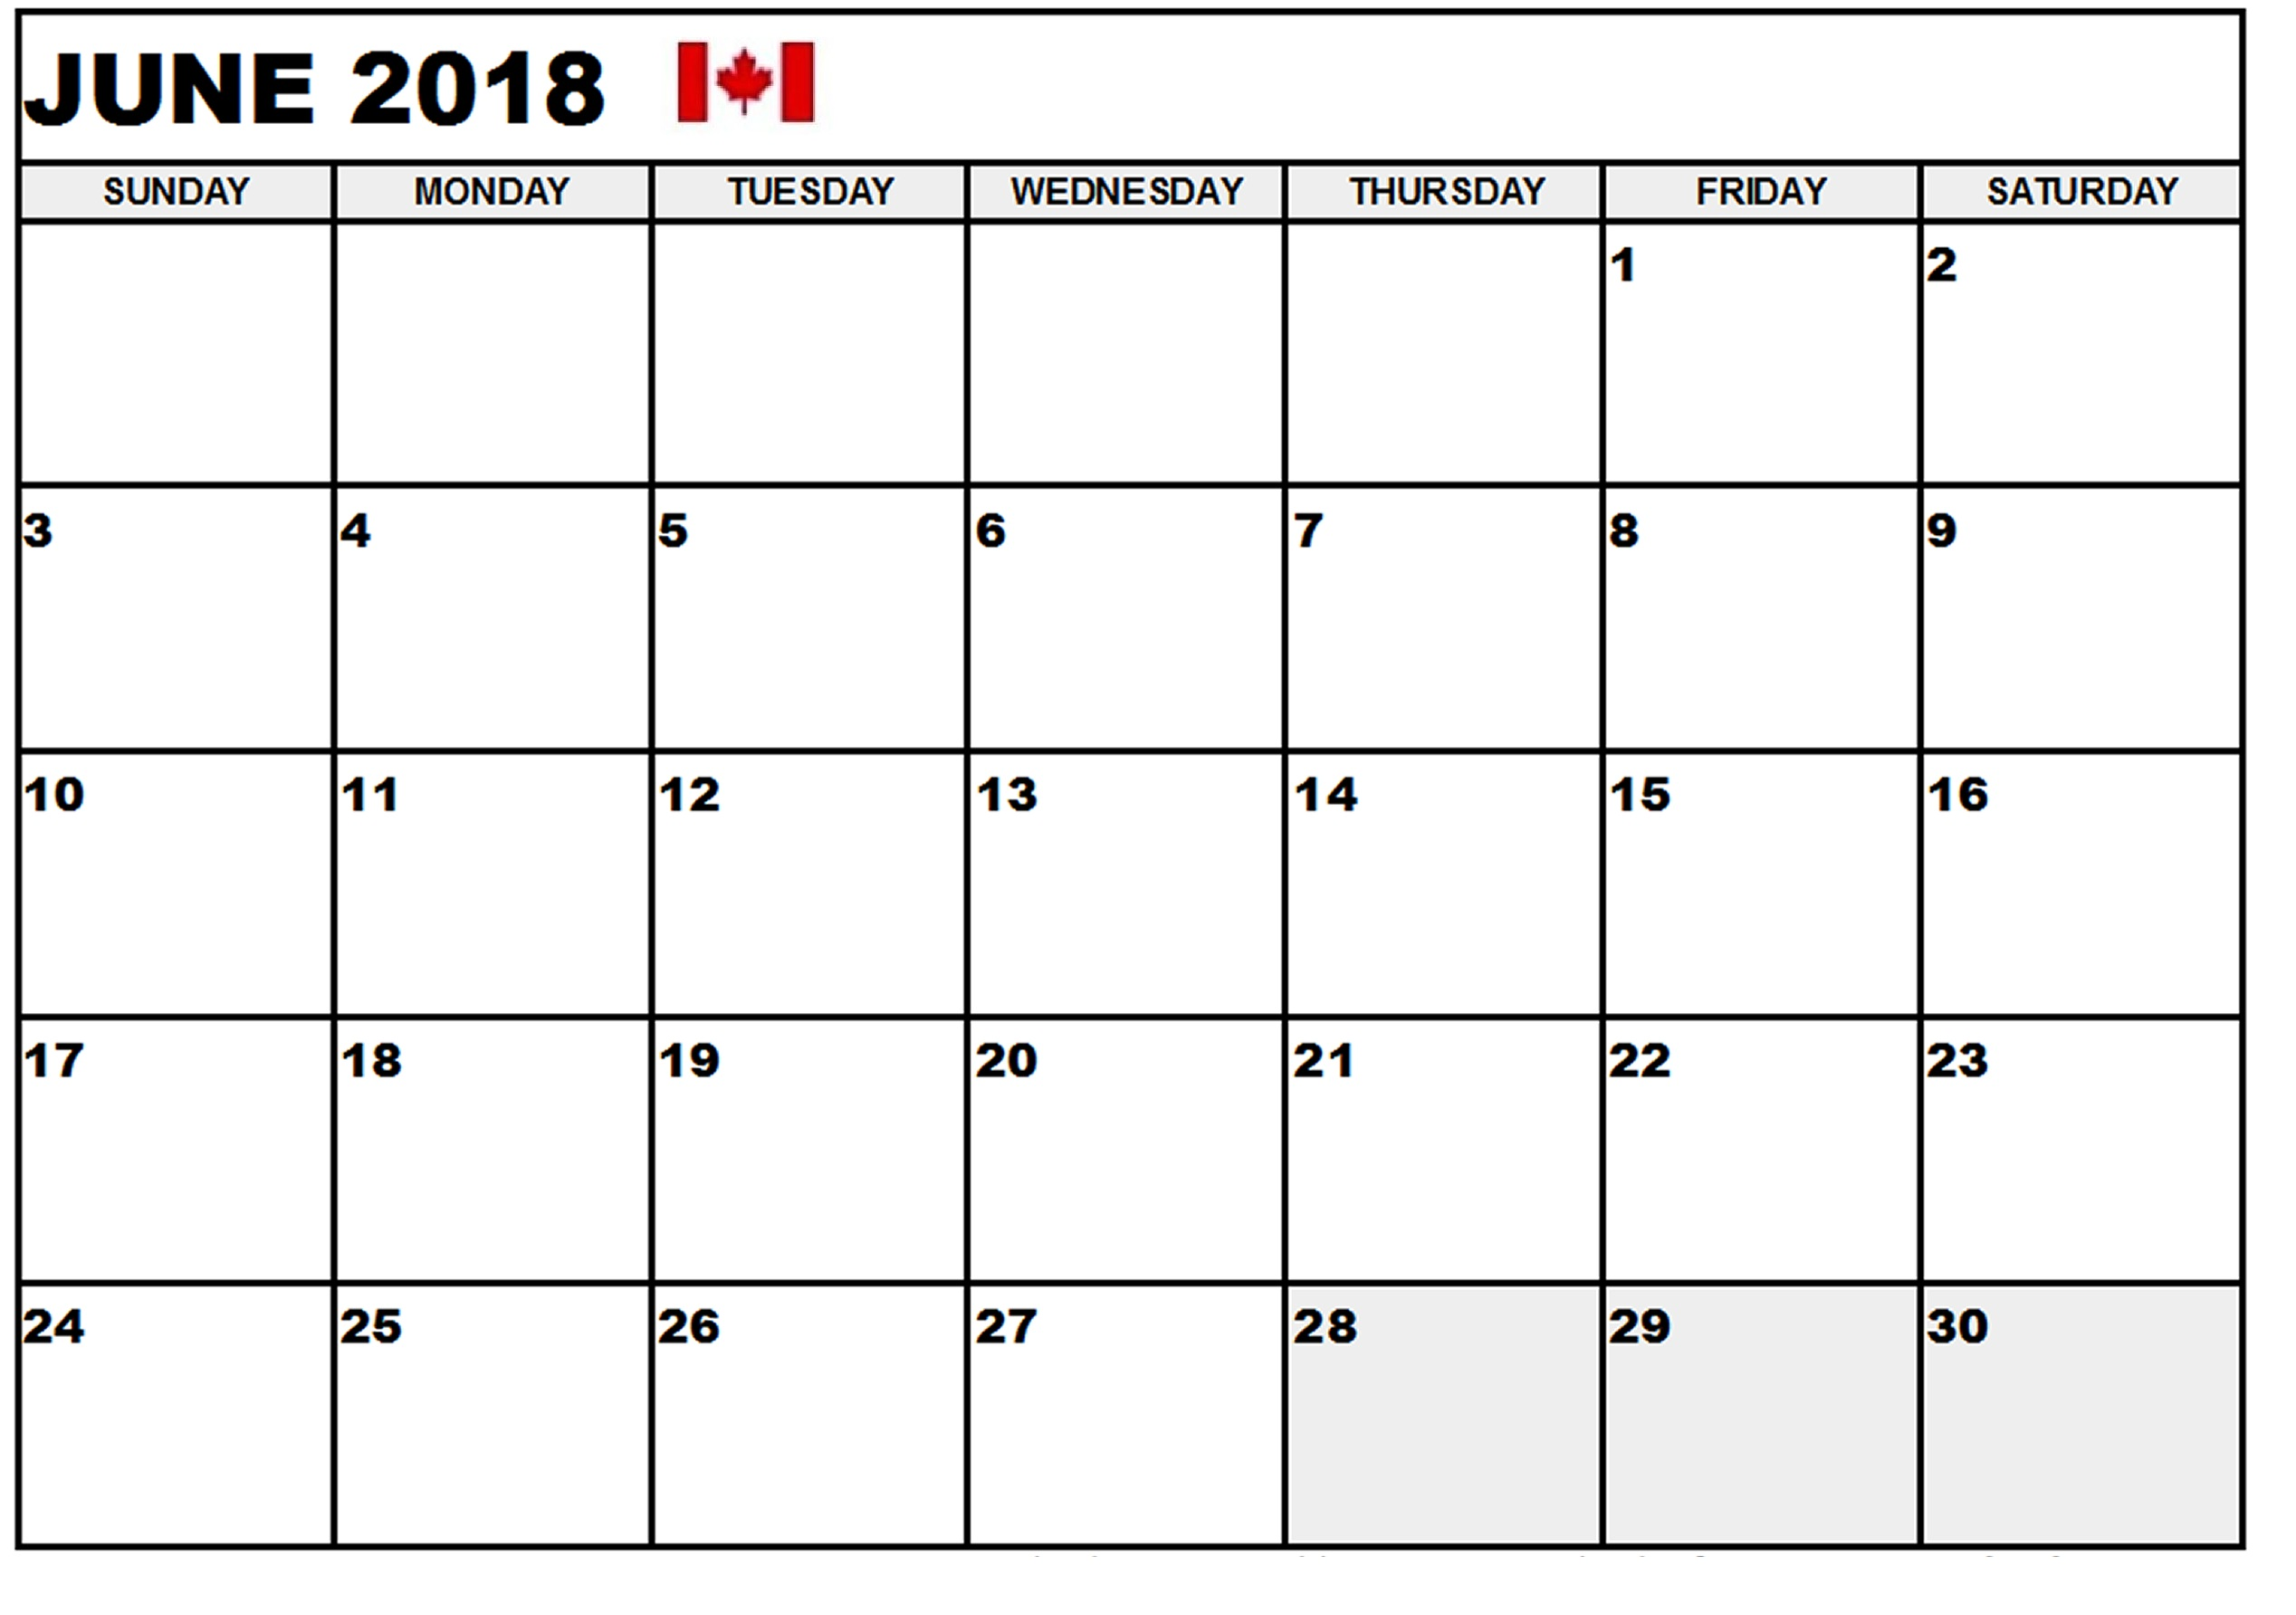 Planner June 2018 Calendar Canada Free Download